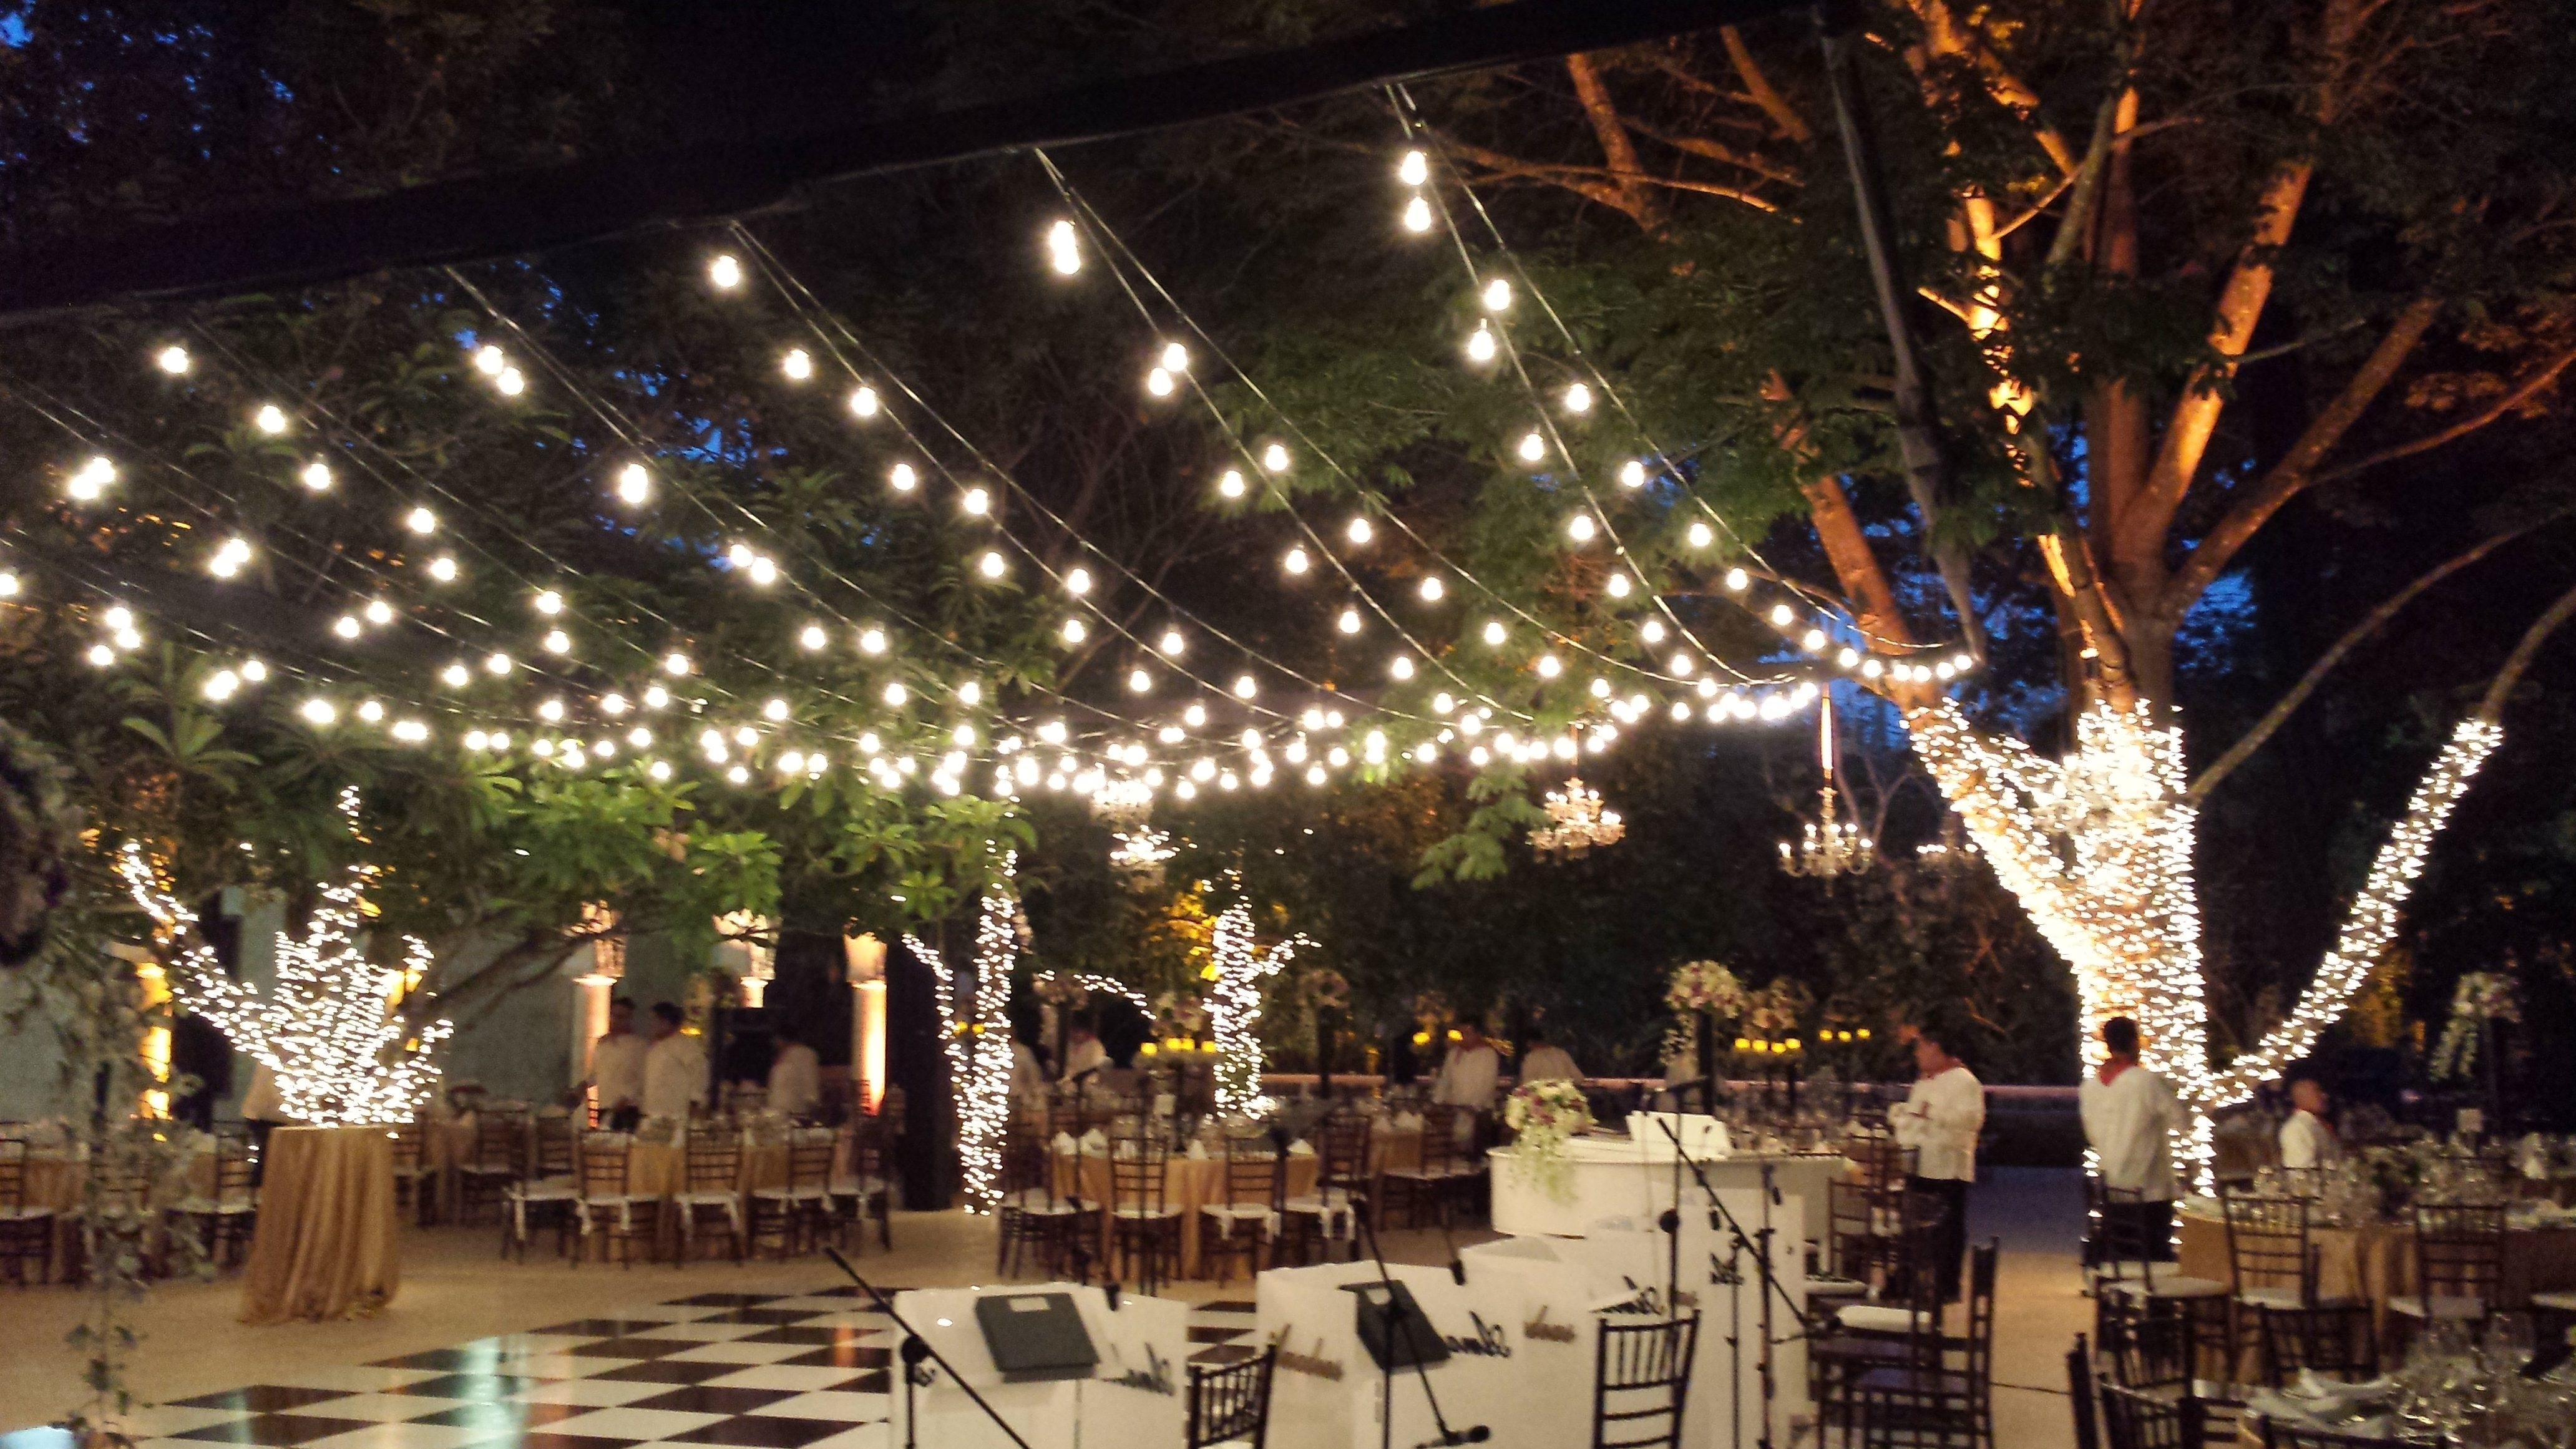 Beautiful Outdoor Deck Lights | Magnificent Lighting Design Within Outdoor Hanging String Lanterns (View 6 of 15)